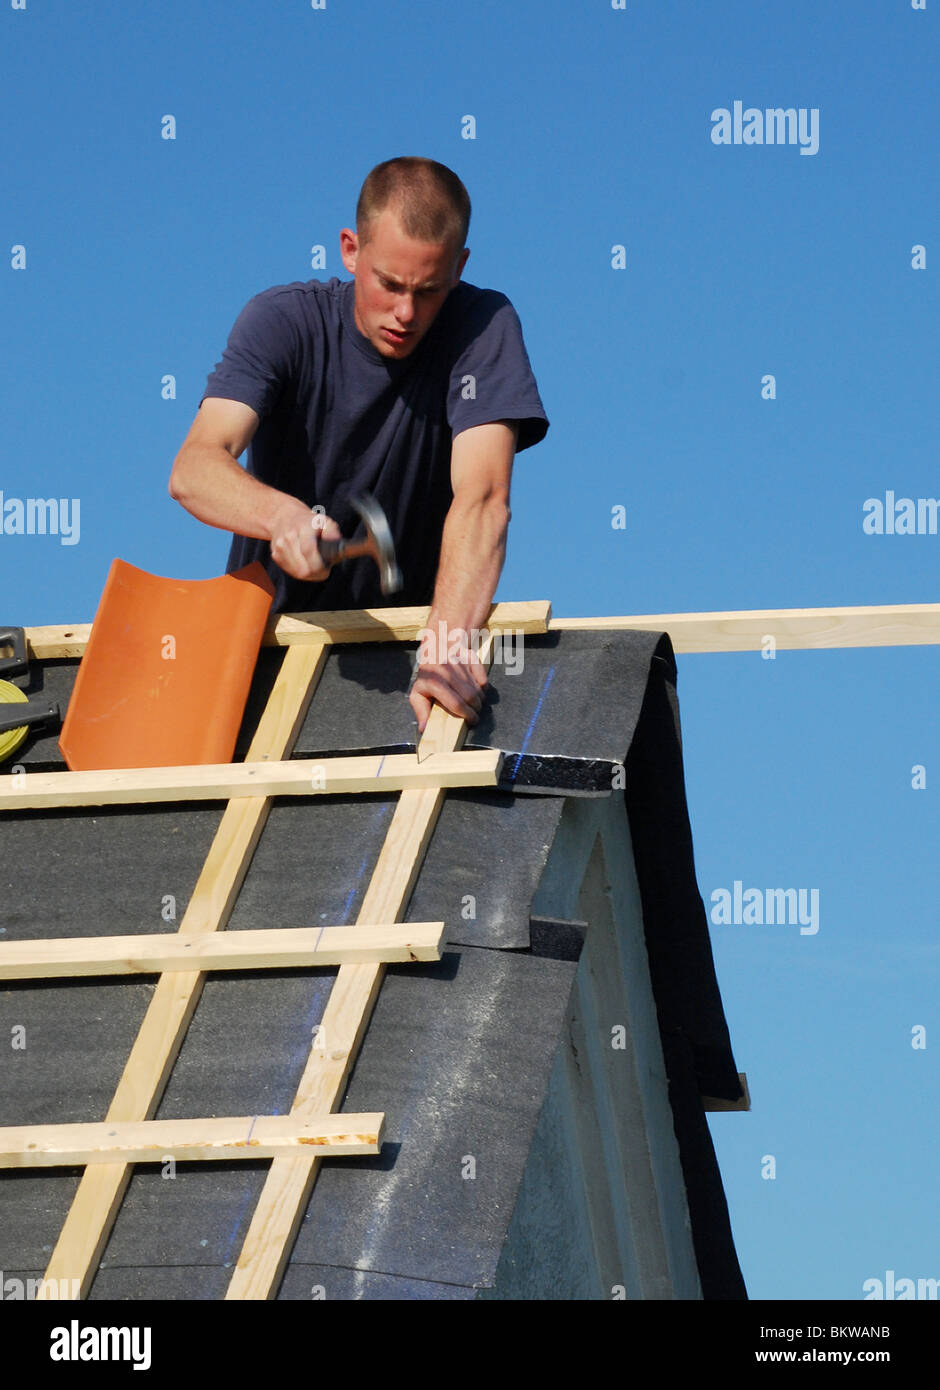 Joiner Stock Photos & Joiner Stock Images - Alamy